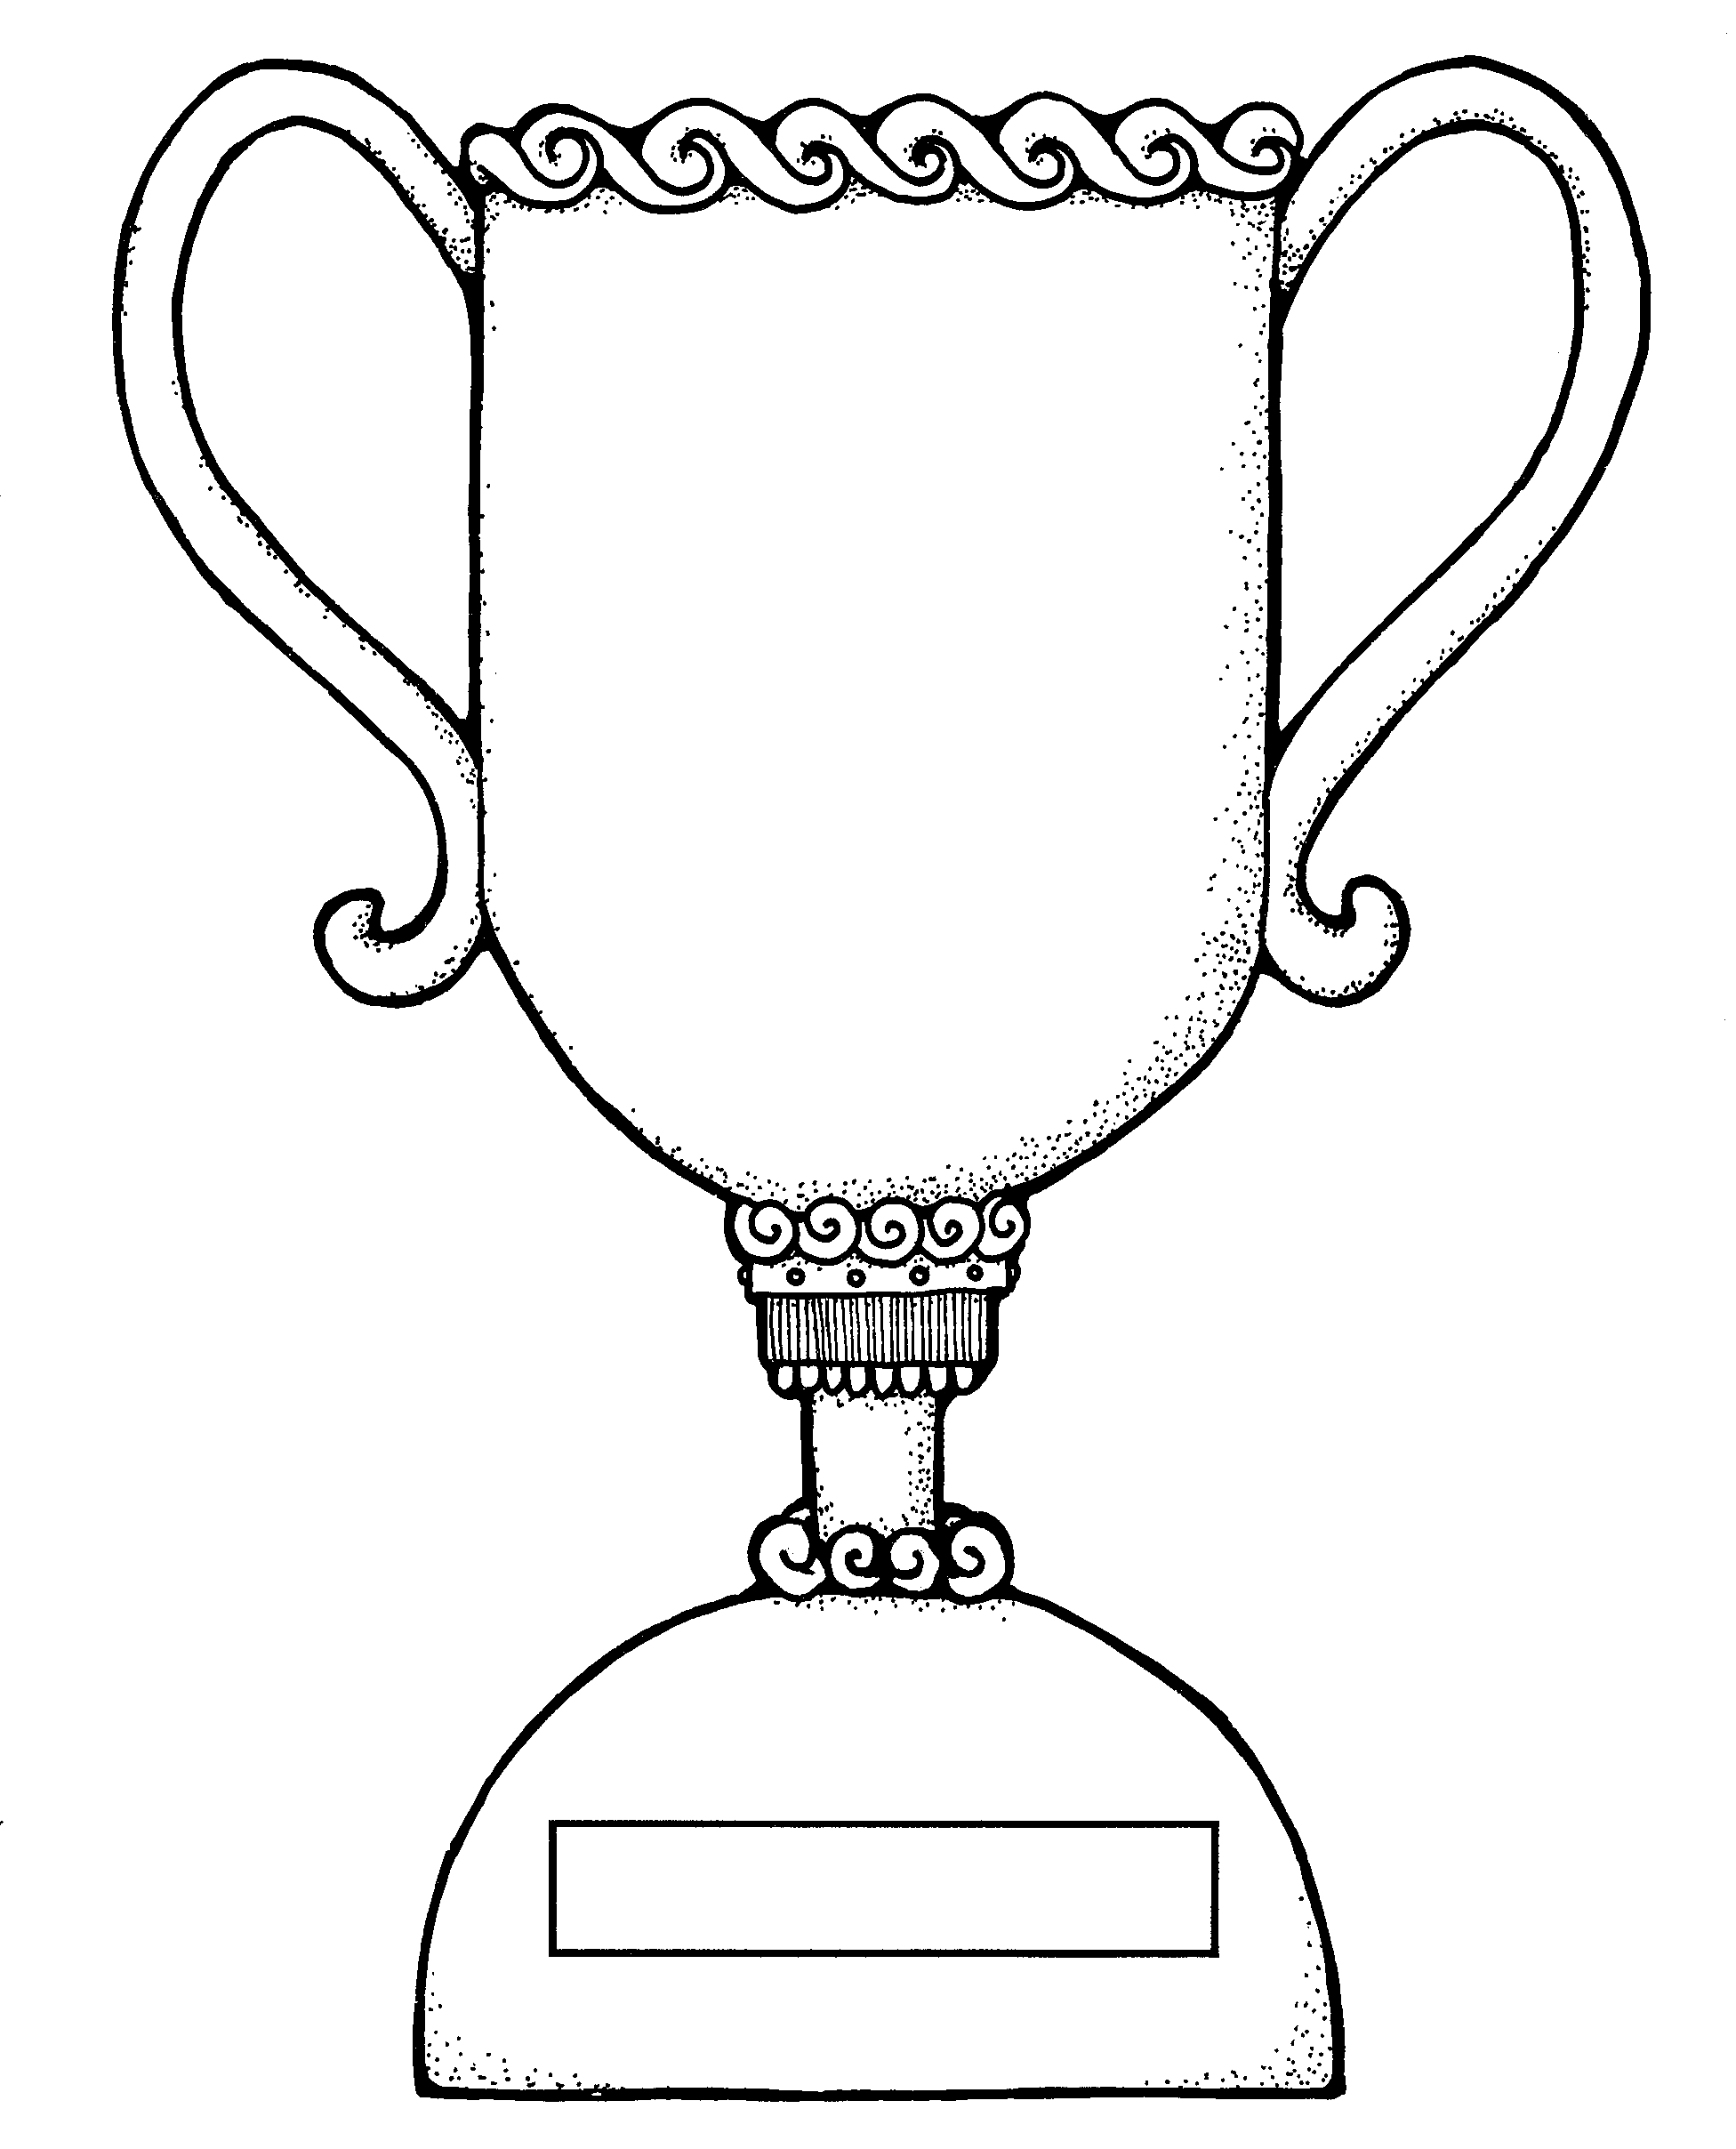 trophy coloring page - trophy coloring sheet sketch templates